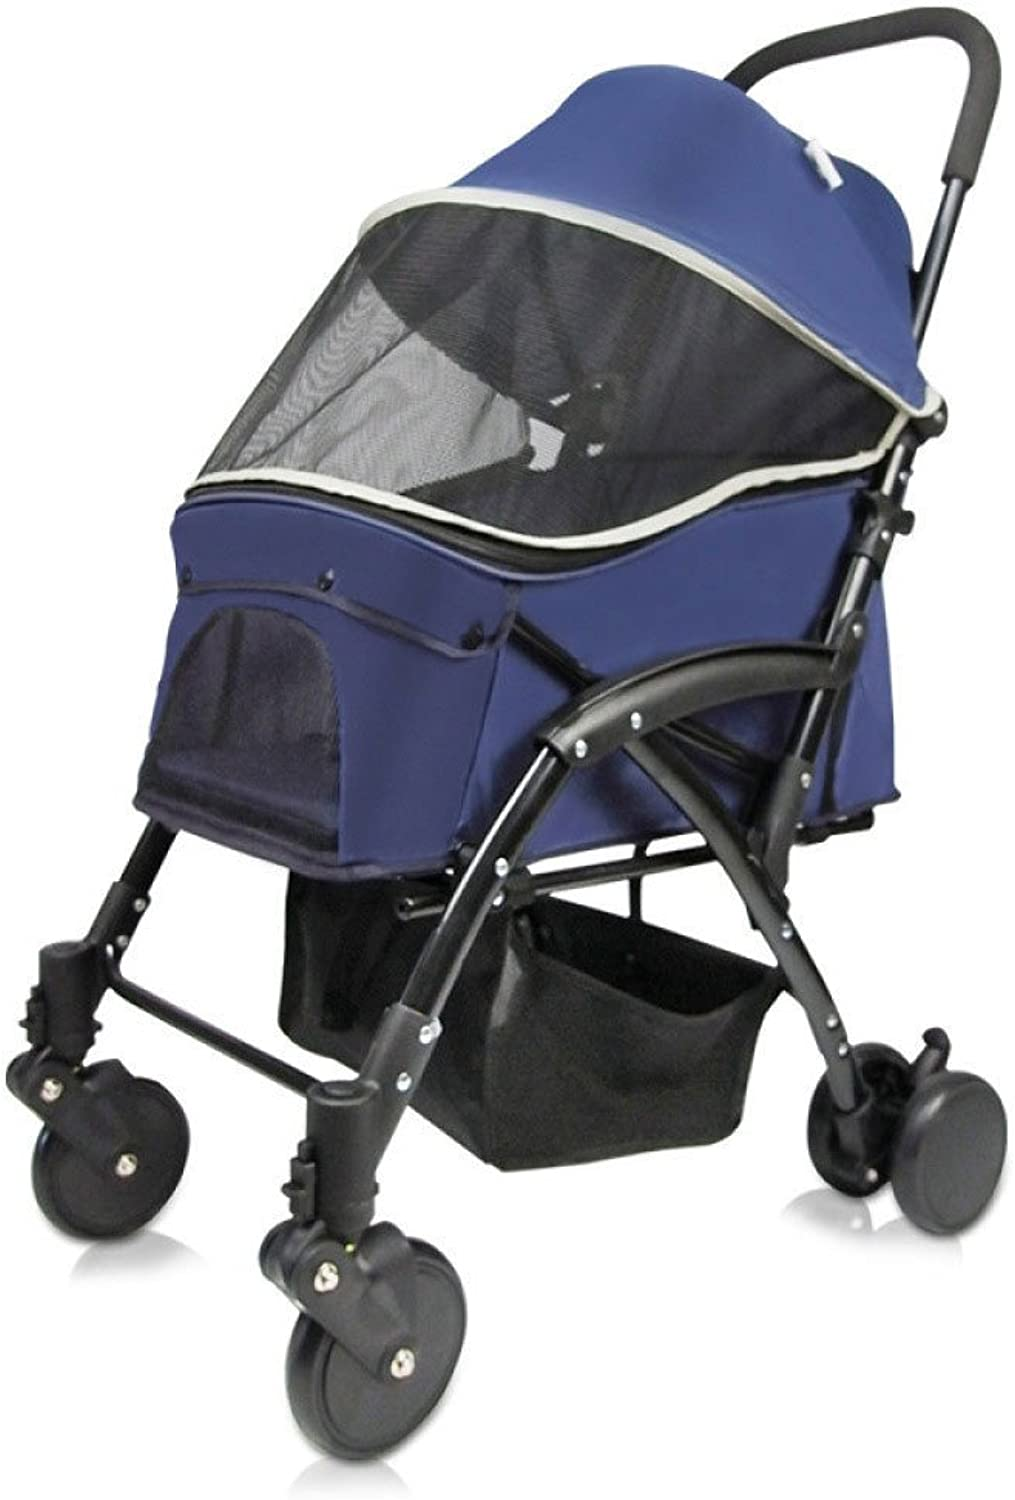 EDYUCGA Portable Folding Pet Trolley Dog Cat Stroller Fashion Fourwheeled Out,Navybluee